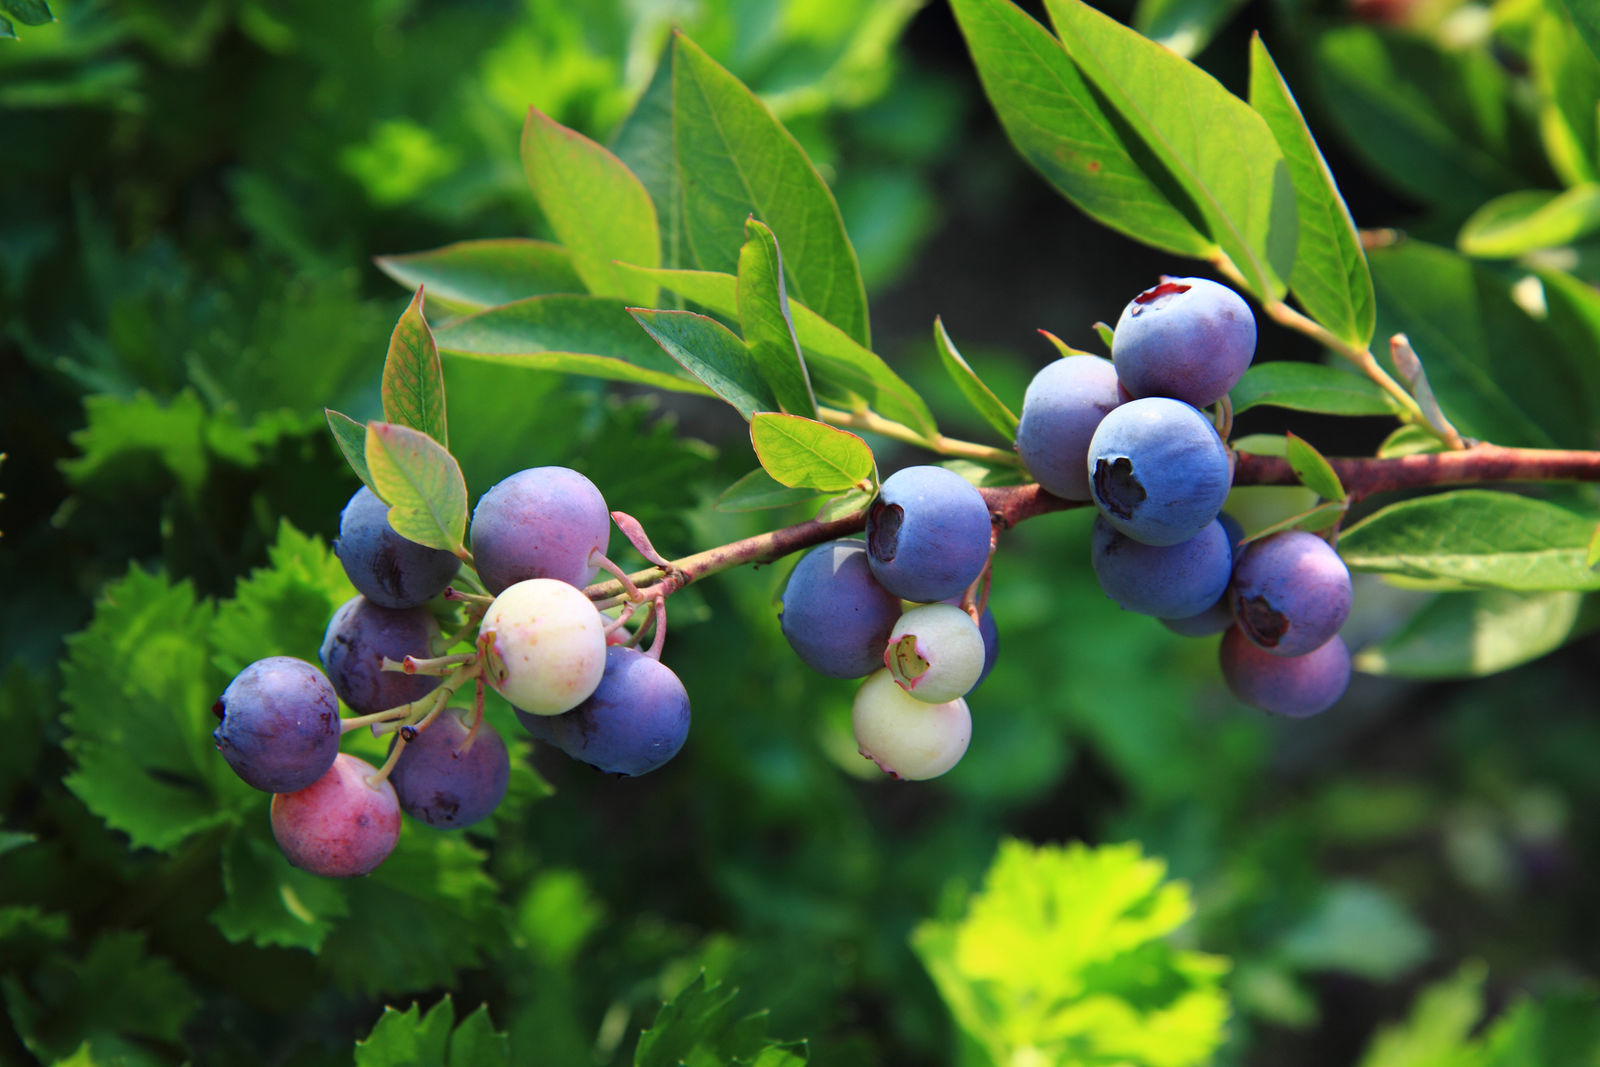 5 NELSON NORTHERN HIGHBUSH BLUEBERRY PLANTS, 2 YEAR OLD, 1 GALLON SIZED PLANT